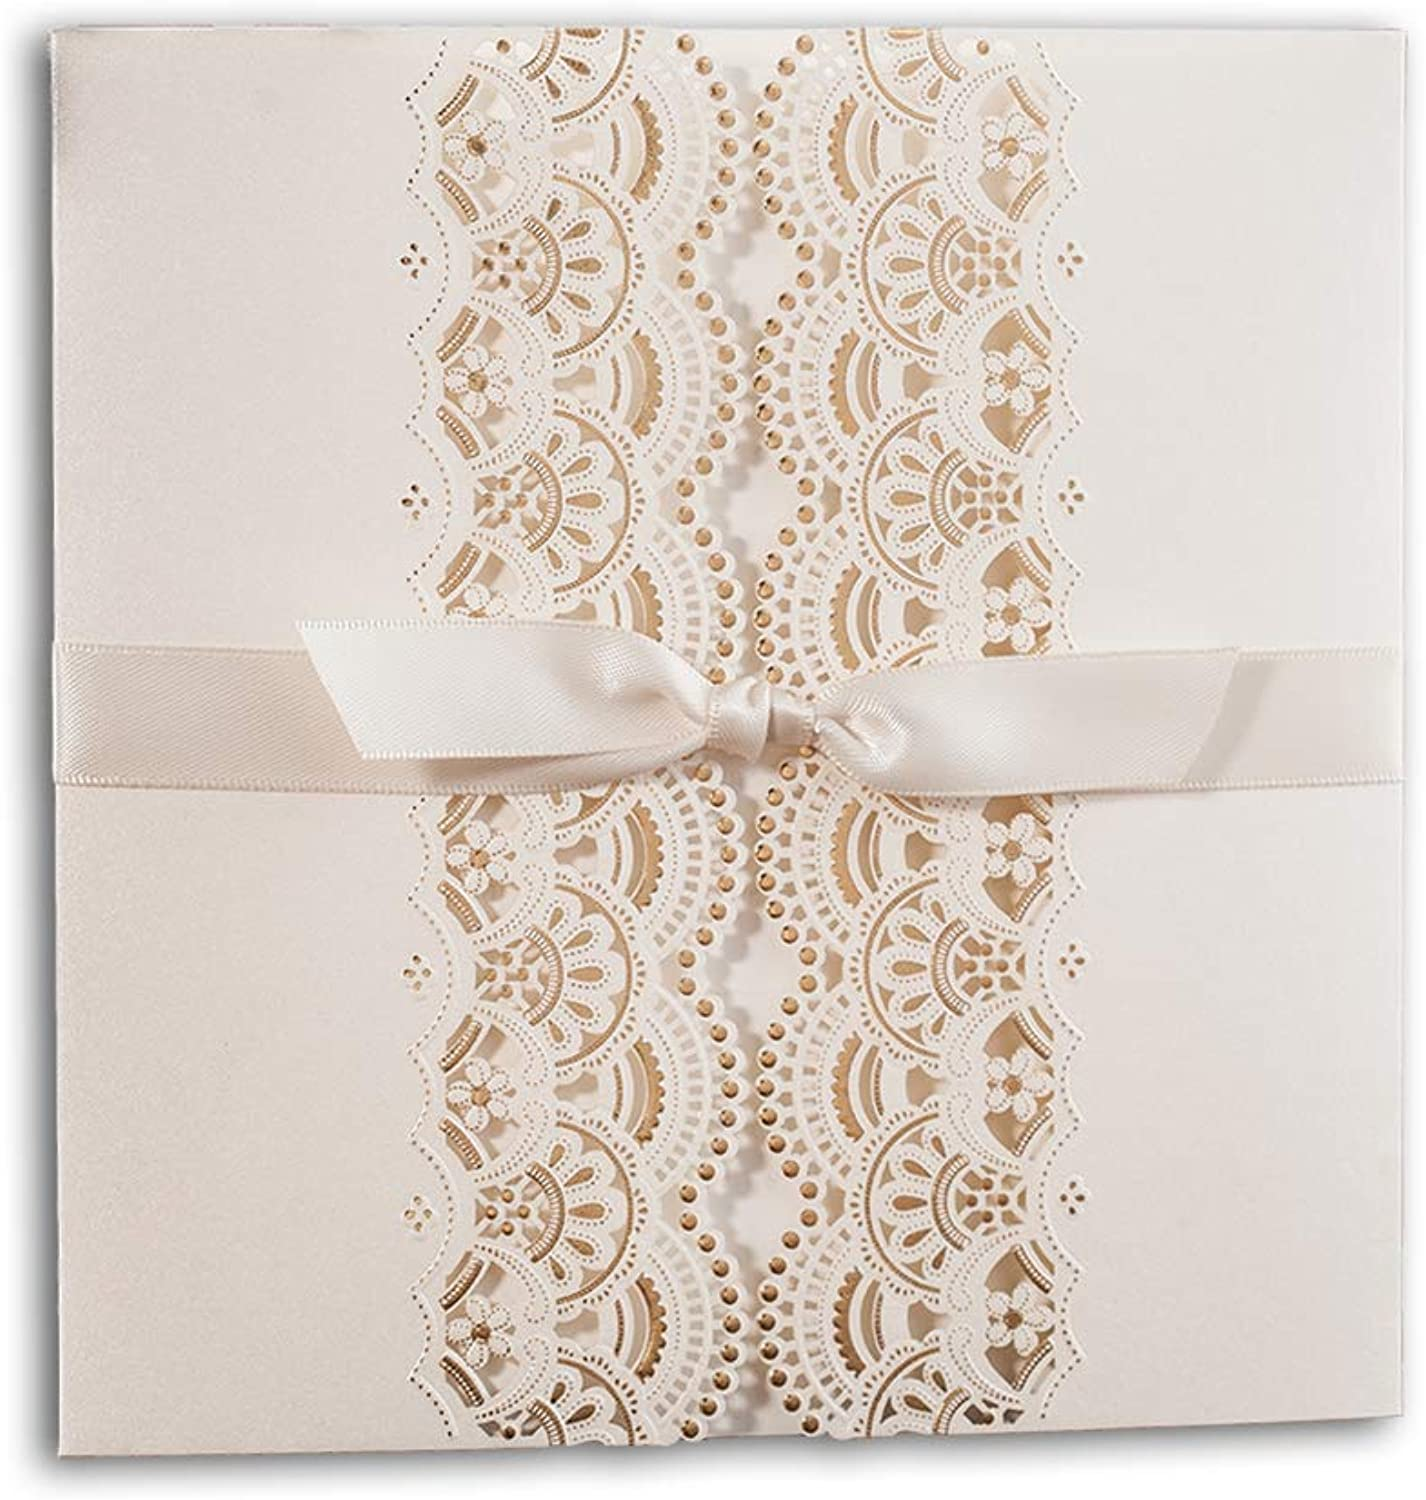 50 WISHMADE White Ivory gold Foil Wedding Invites with Envelope RSVP and Thank You Card, Handmade Ribbon Design Blank Printable Invitation for Engegement Bridal Shower CW6111